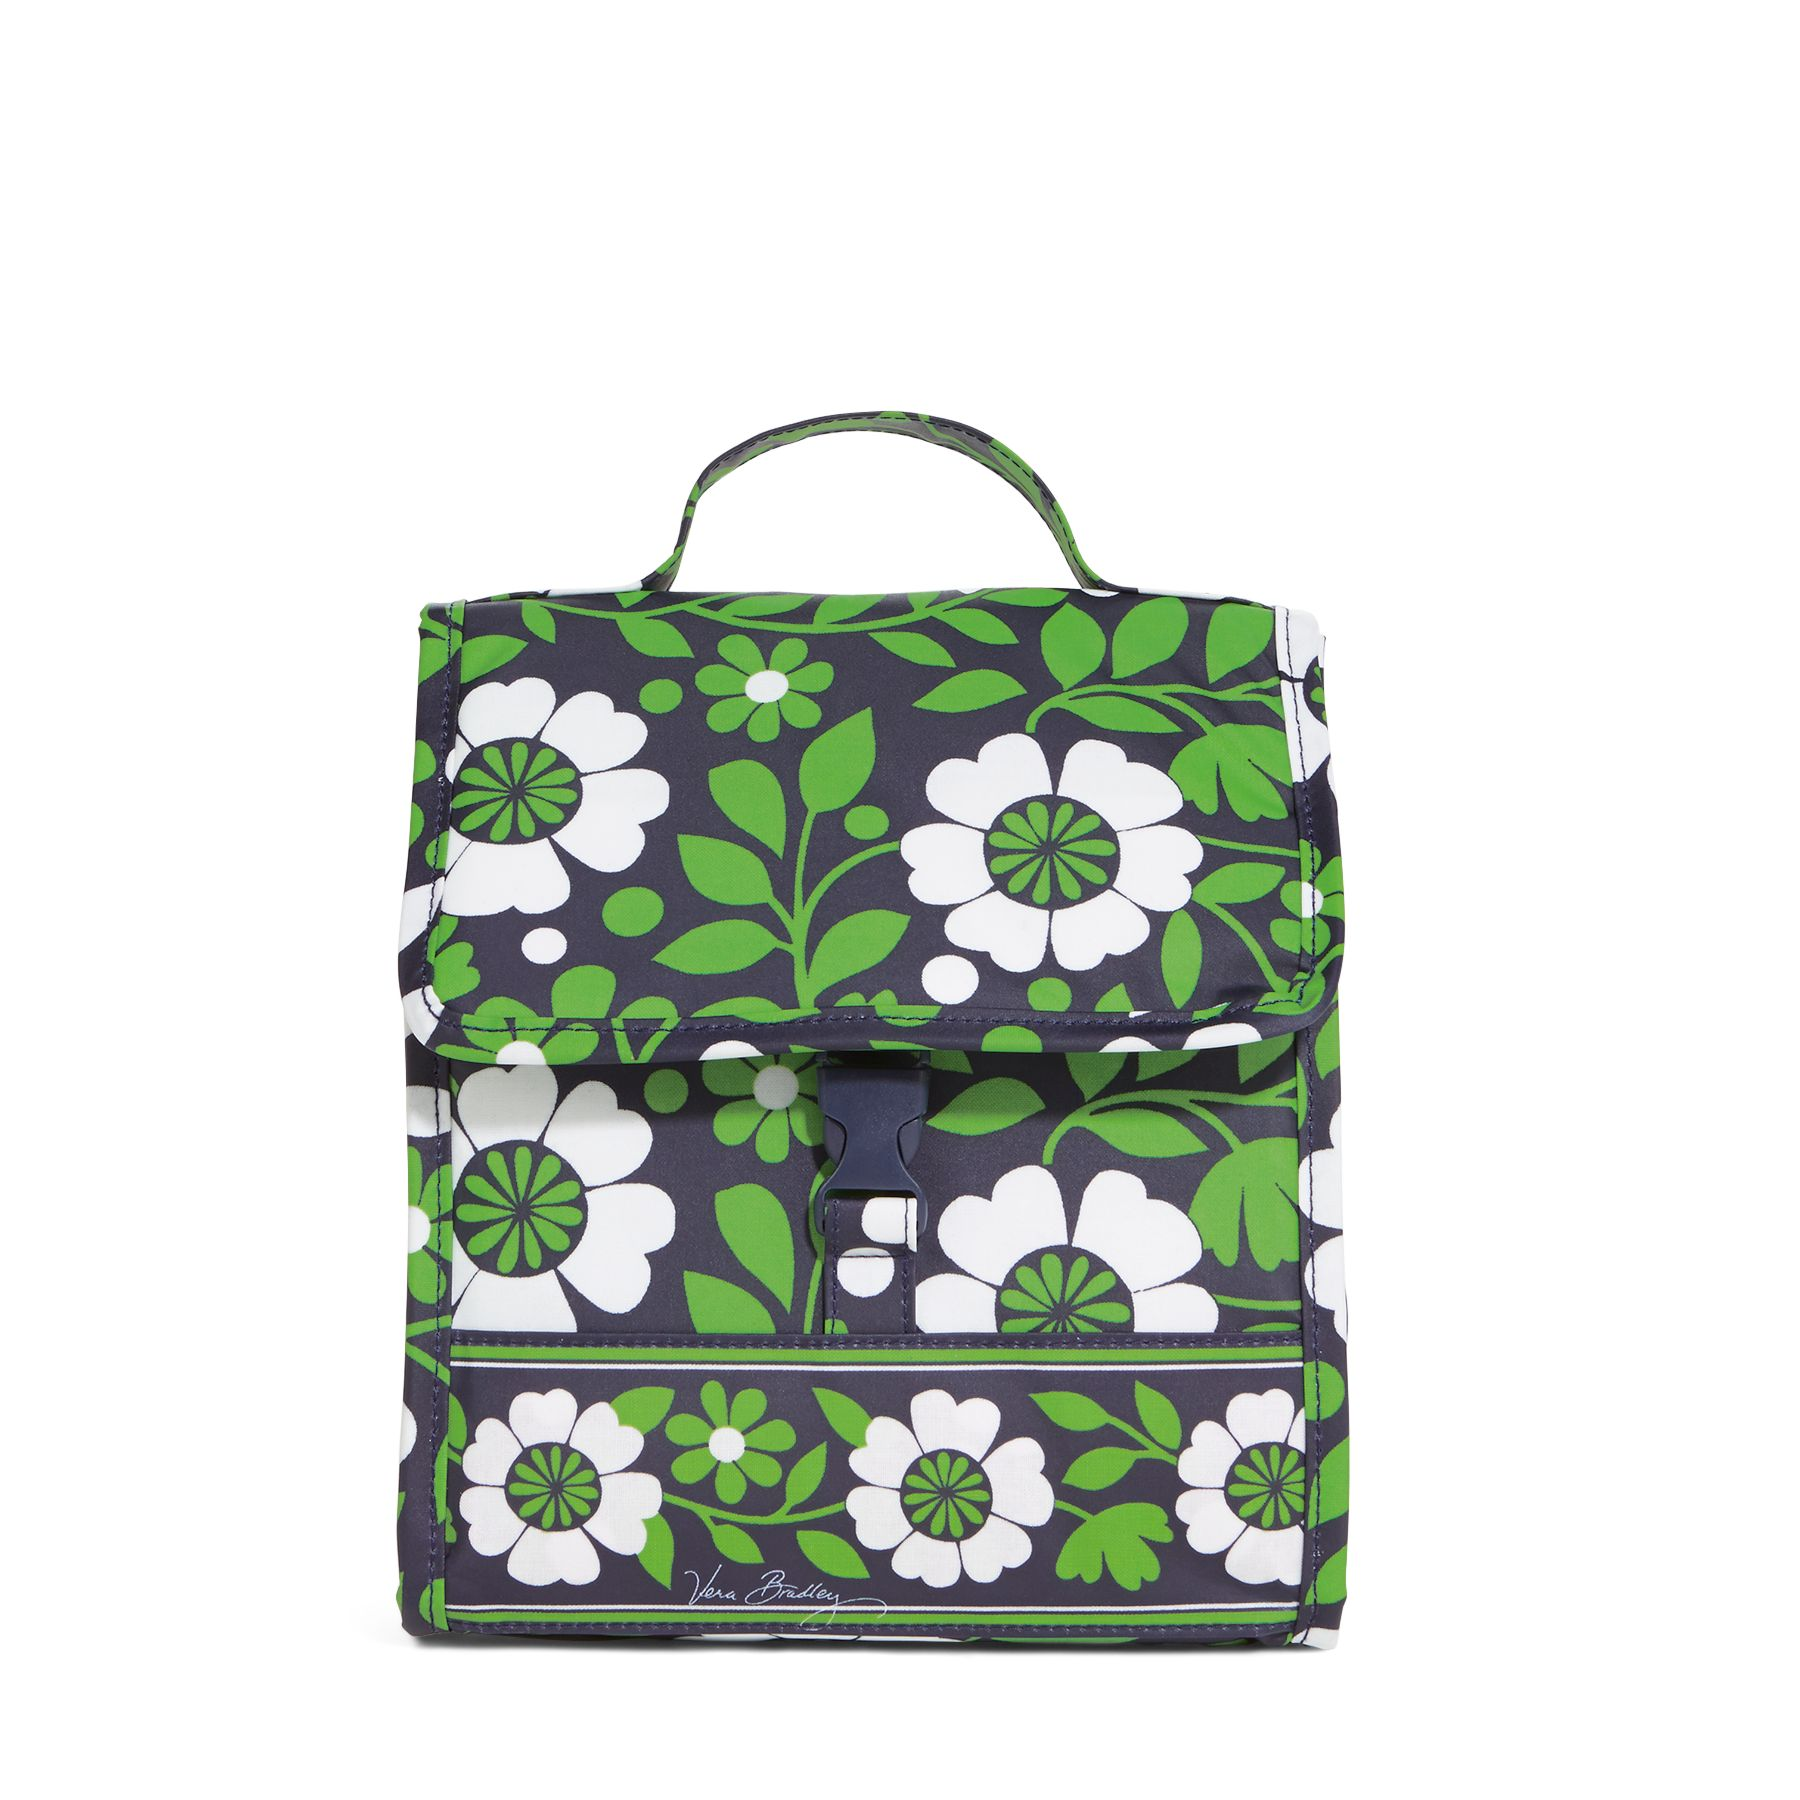 Vera Bradley Lunch Sack Bag in Lucky You